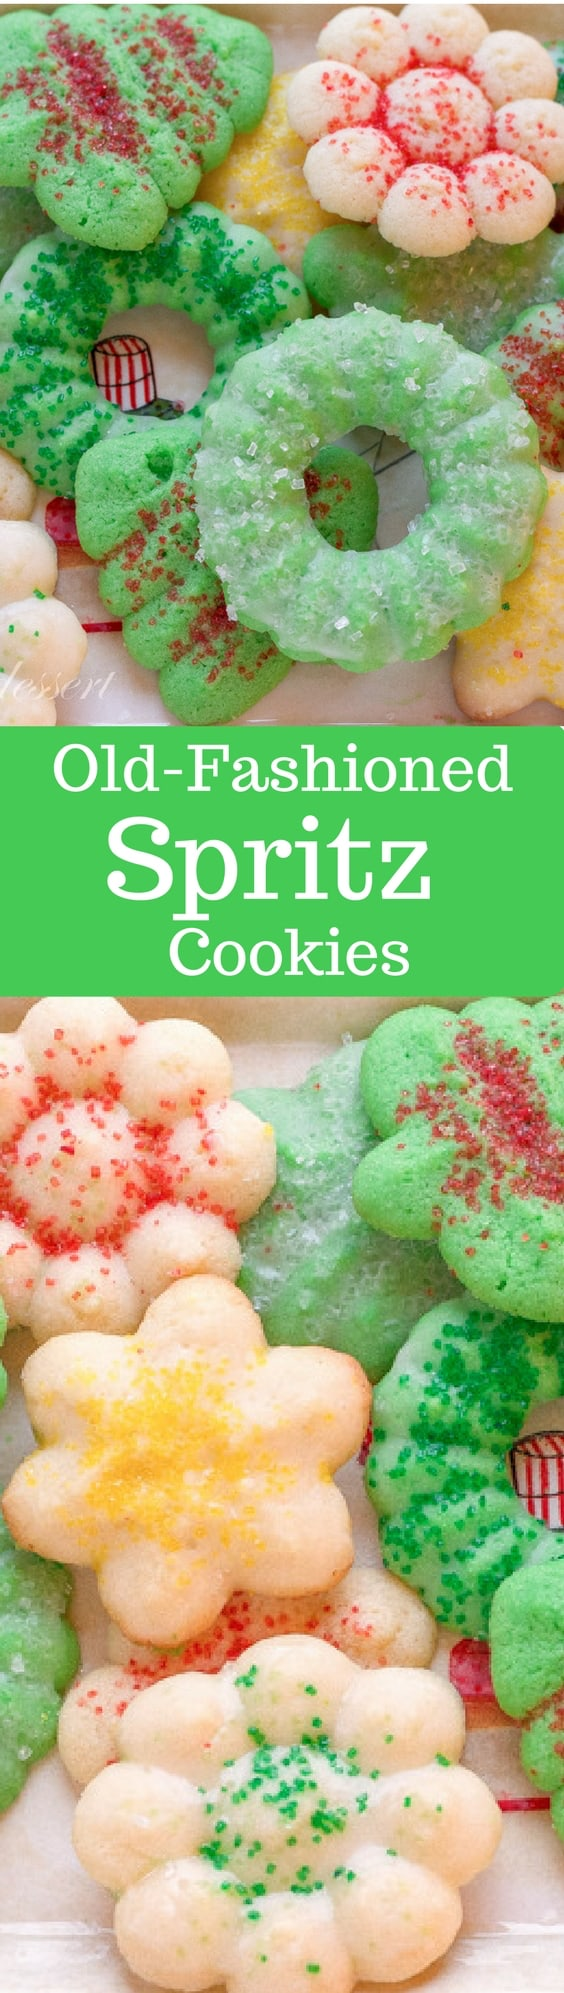 Old-Fashioned Spritz Cookies - perfect for your holiday table | www.savingdessert.com